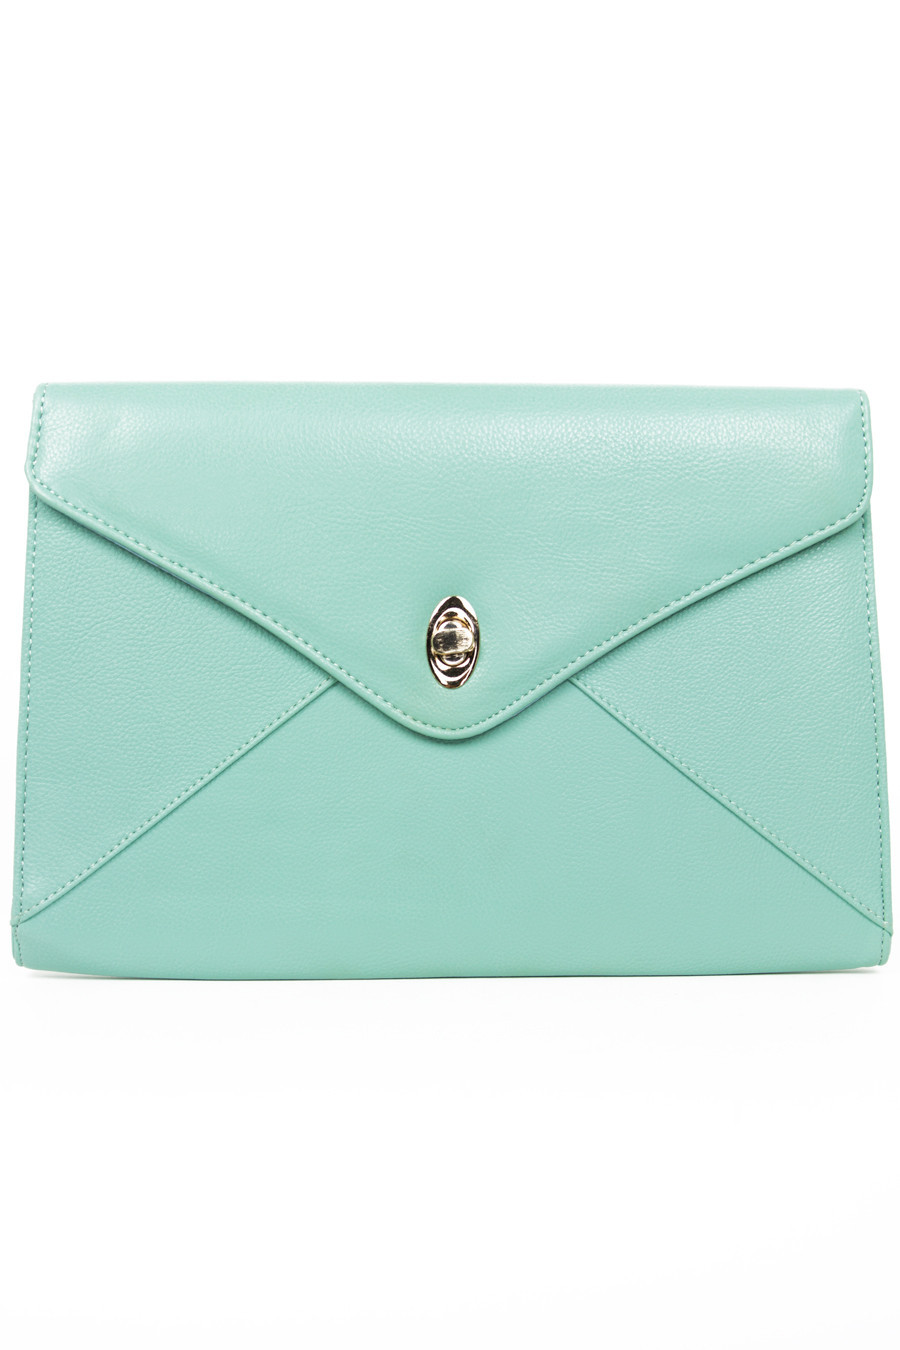 OVERSIZED CLUTCH - Mint | Haute & Rebellious